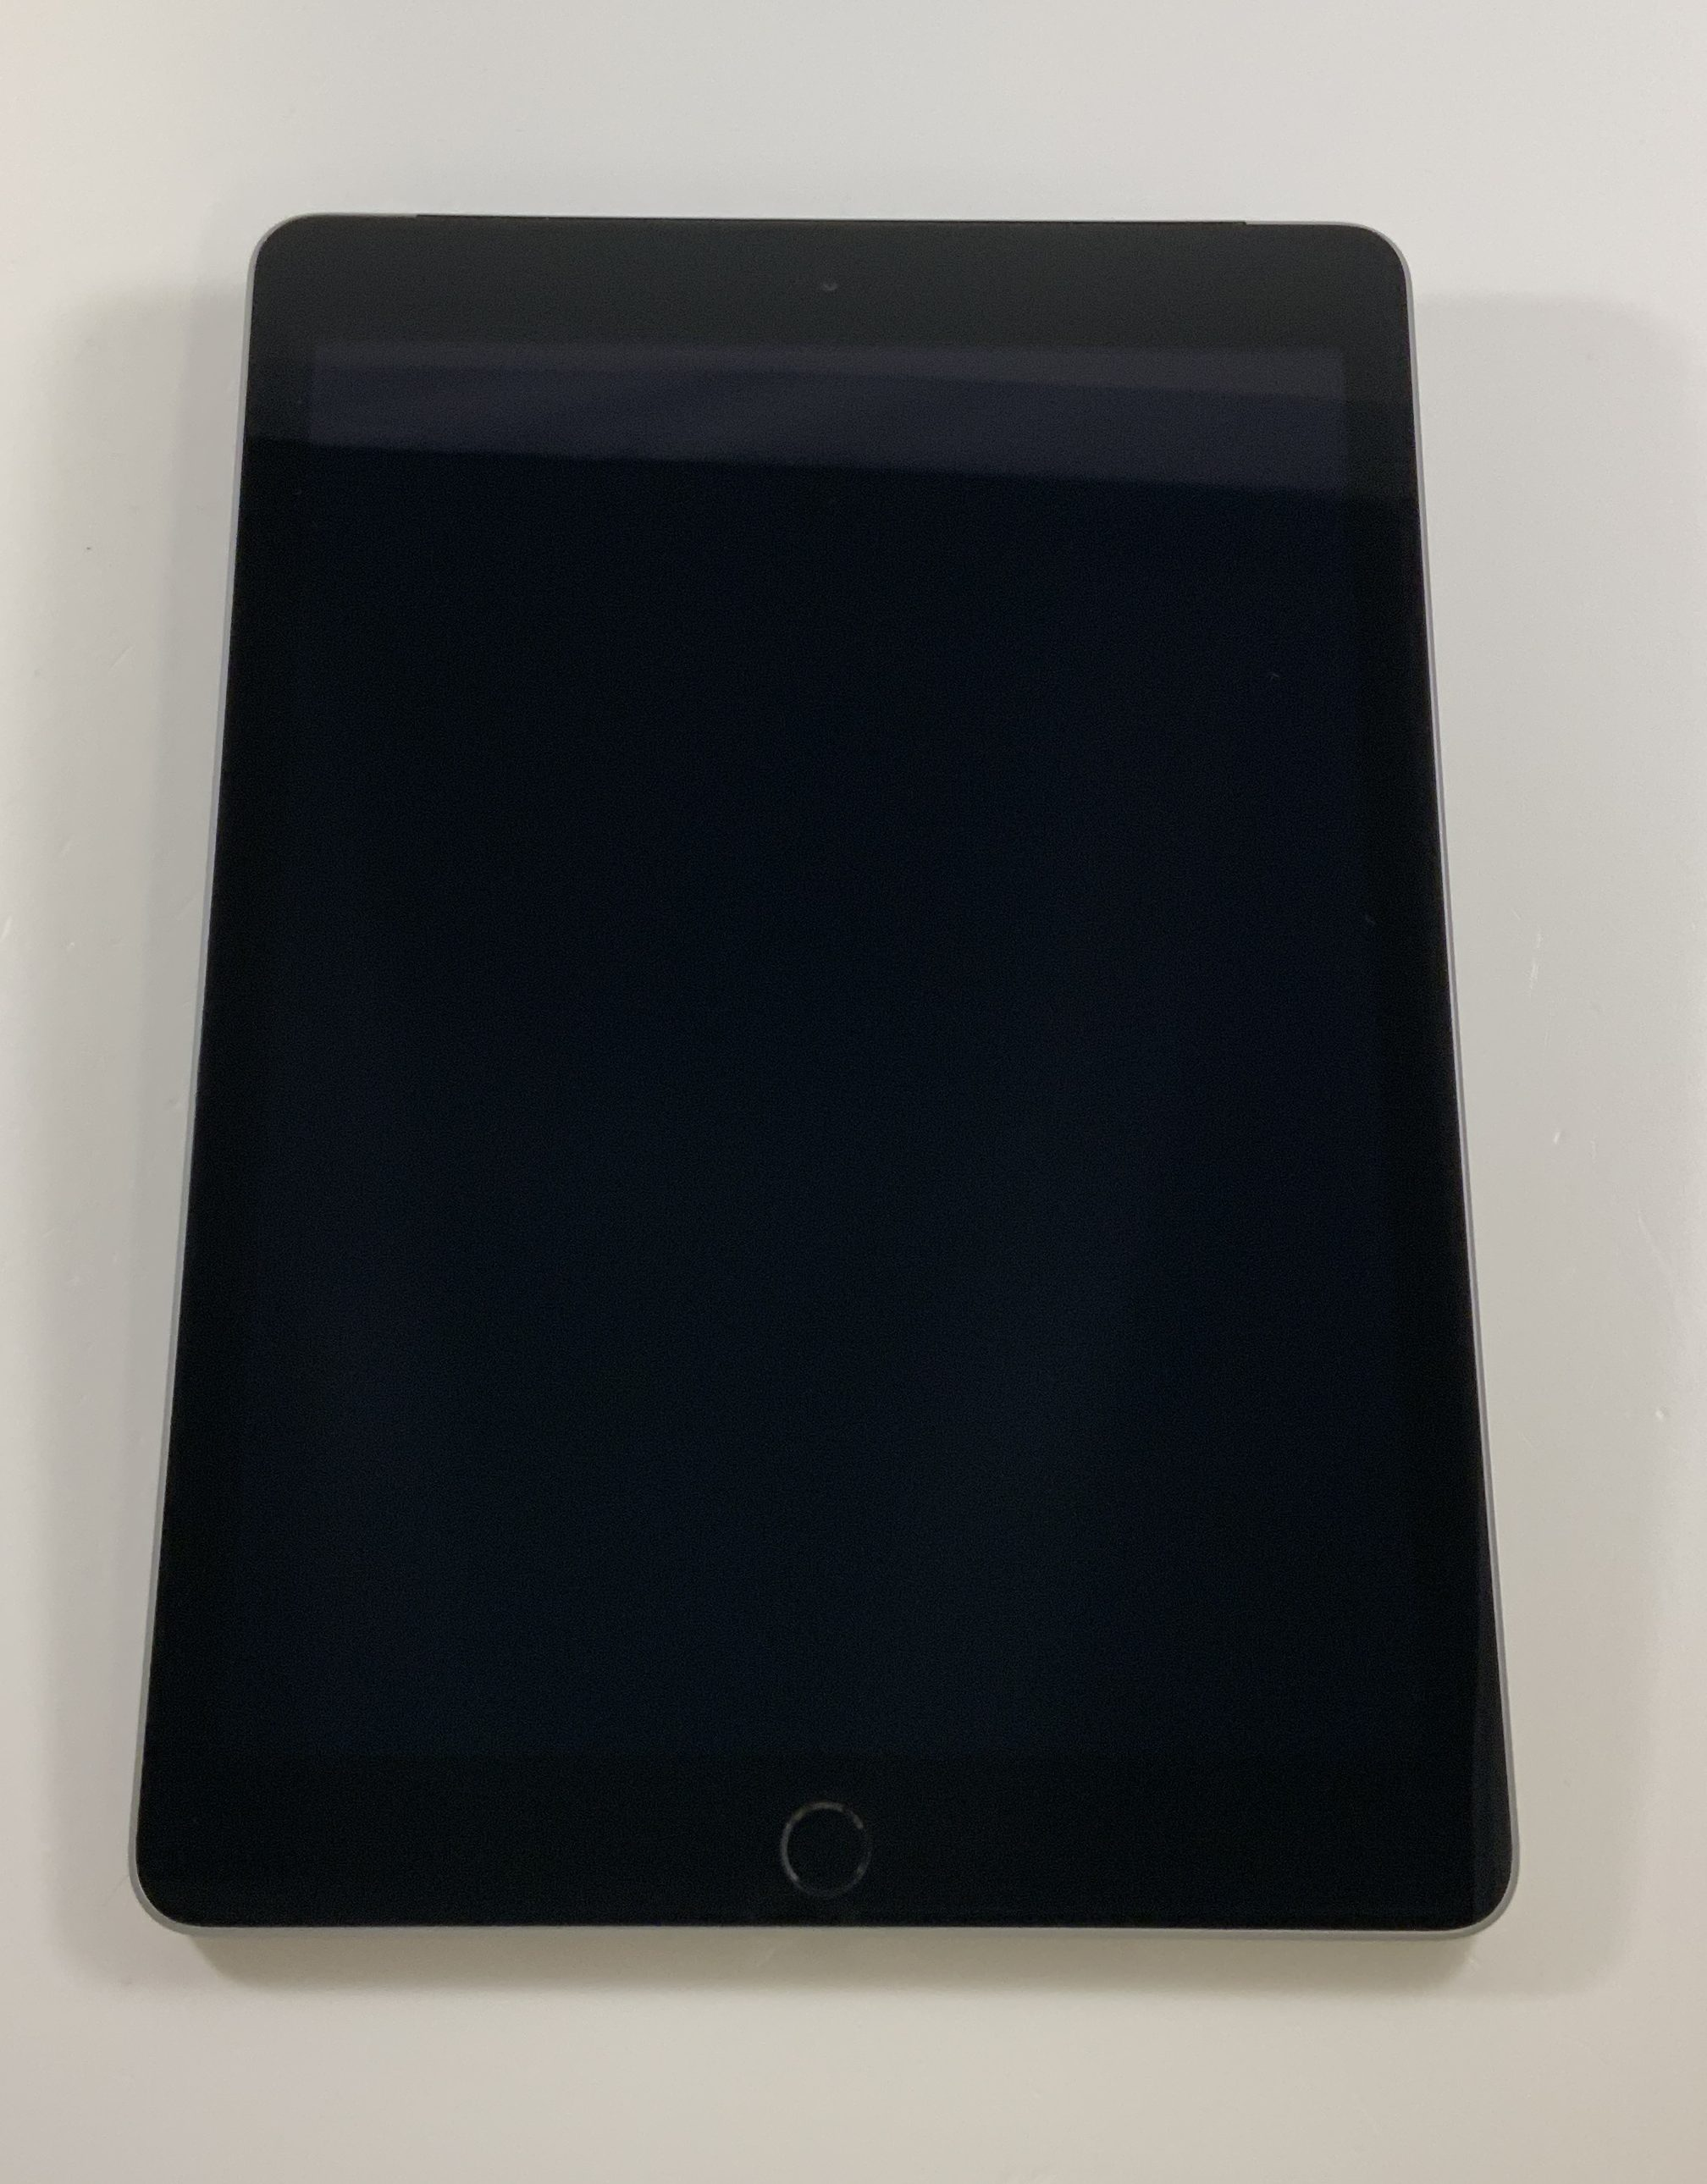 iPad 5 Wi-Fi + Cellular 128GB, 128GB, Space Gray, bild 1